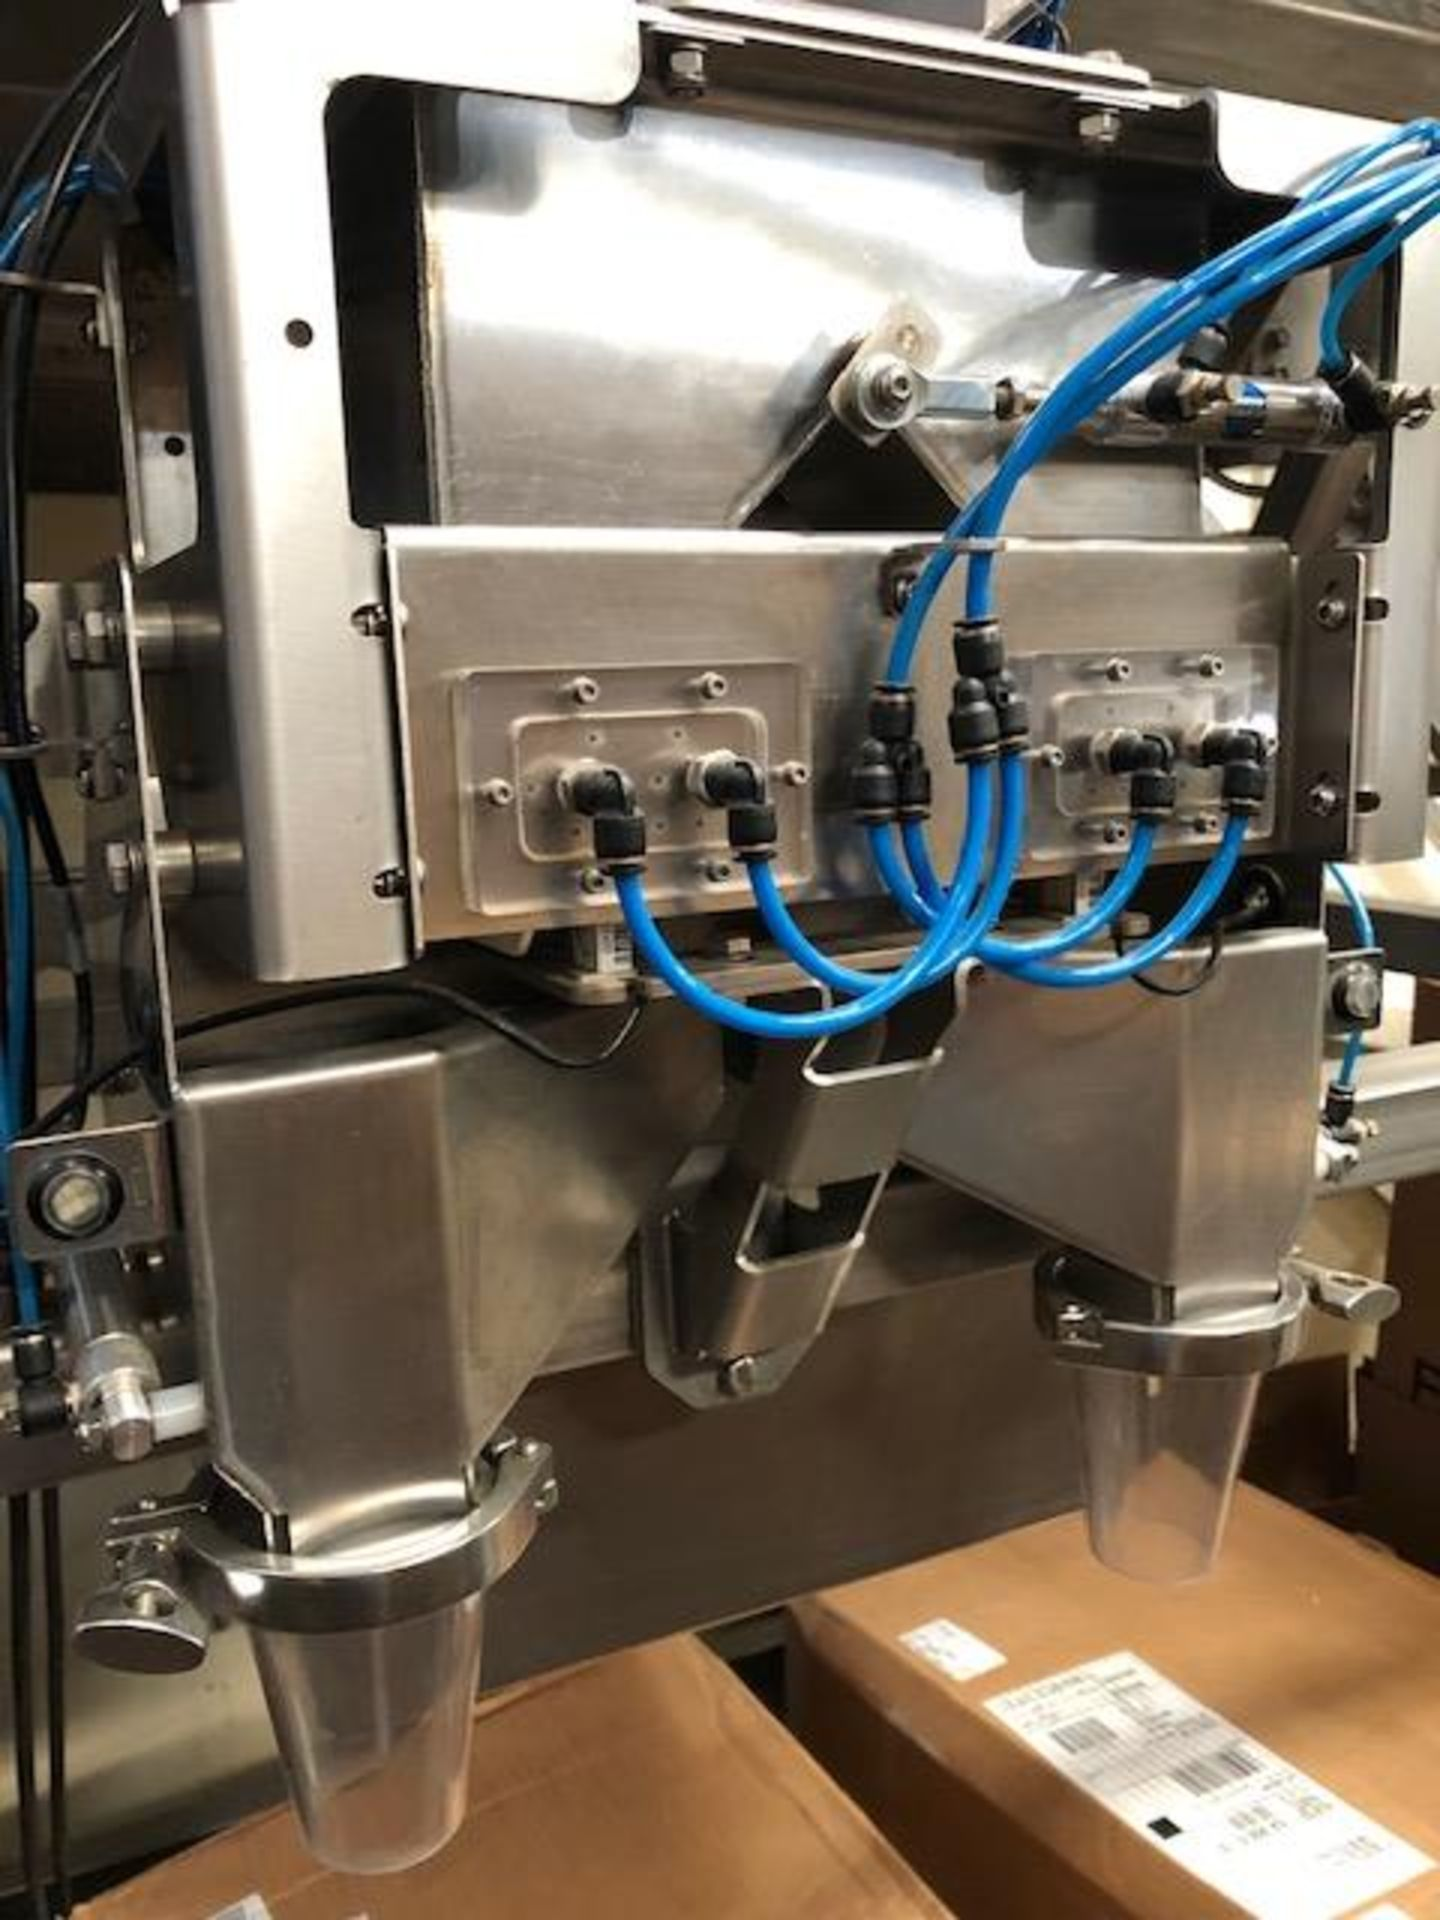 Used-Green Vault Systems Precision Batcher for Batching & Packaging Flower w/ Air Compressor - Image 18 of 23